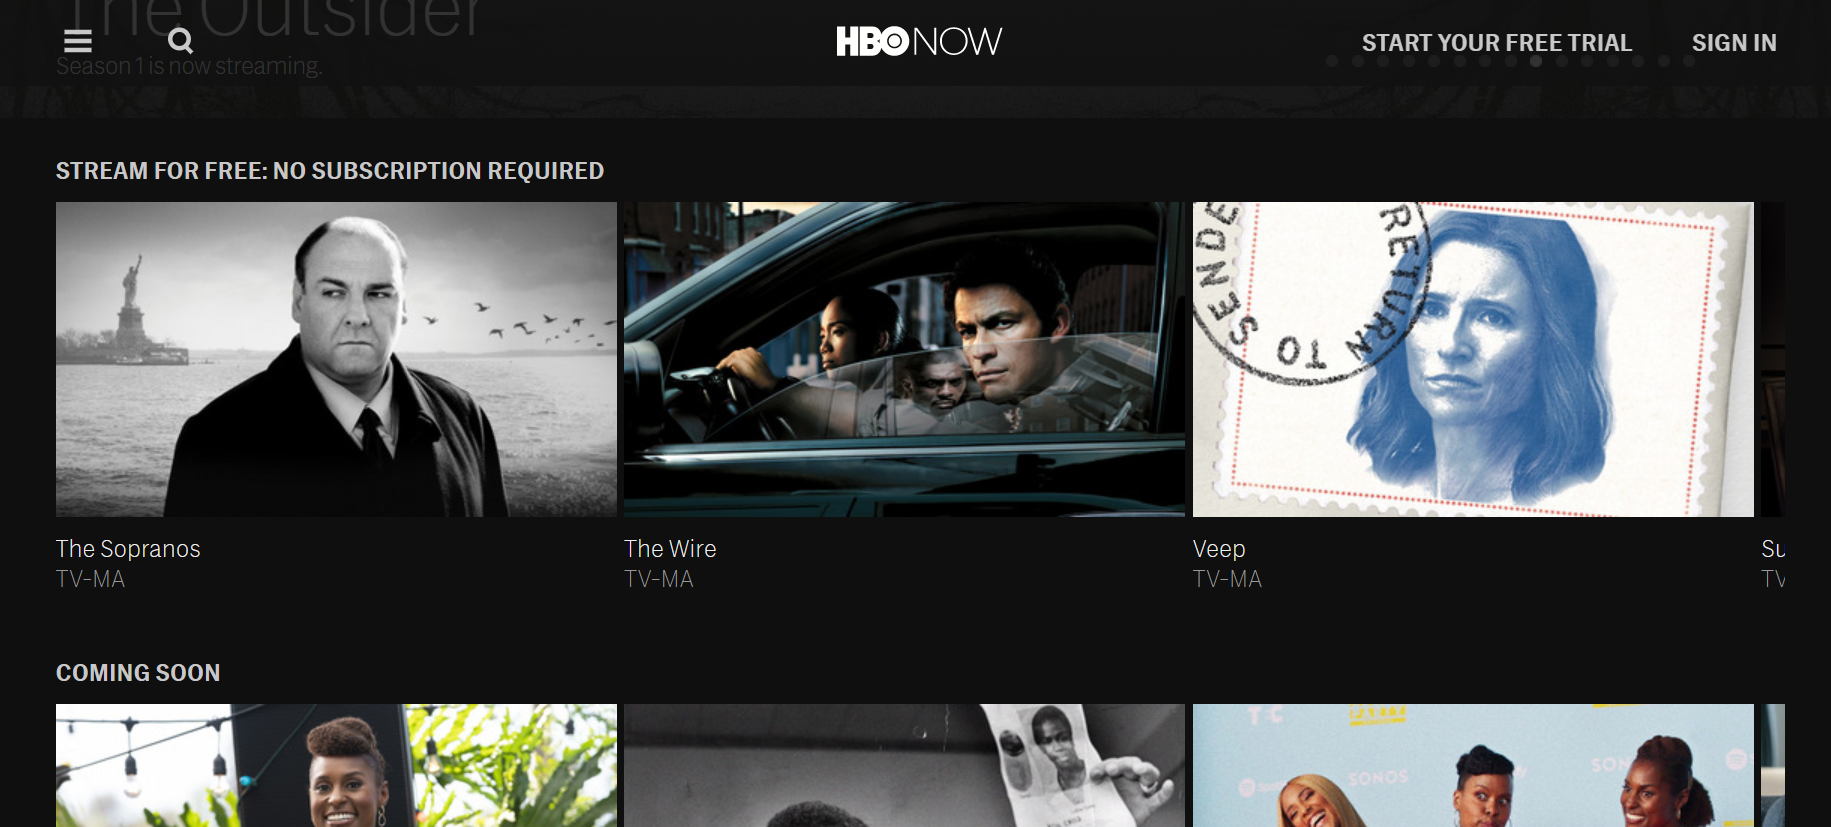 HBO Now - Stream for Free No Subscription Required